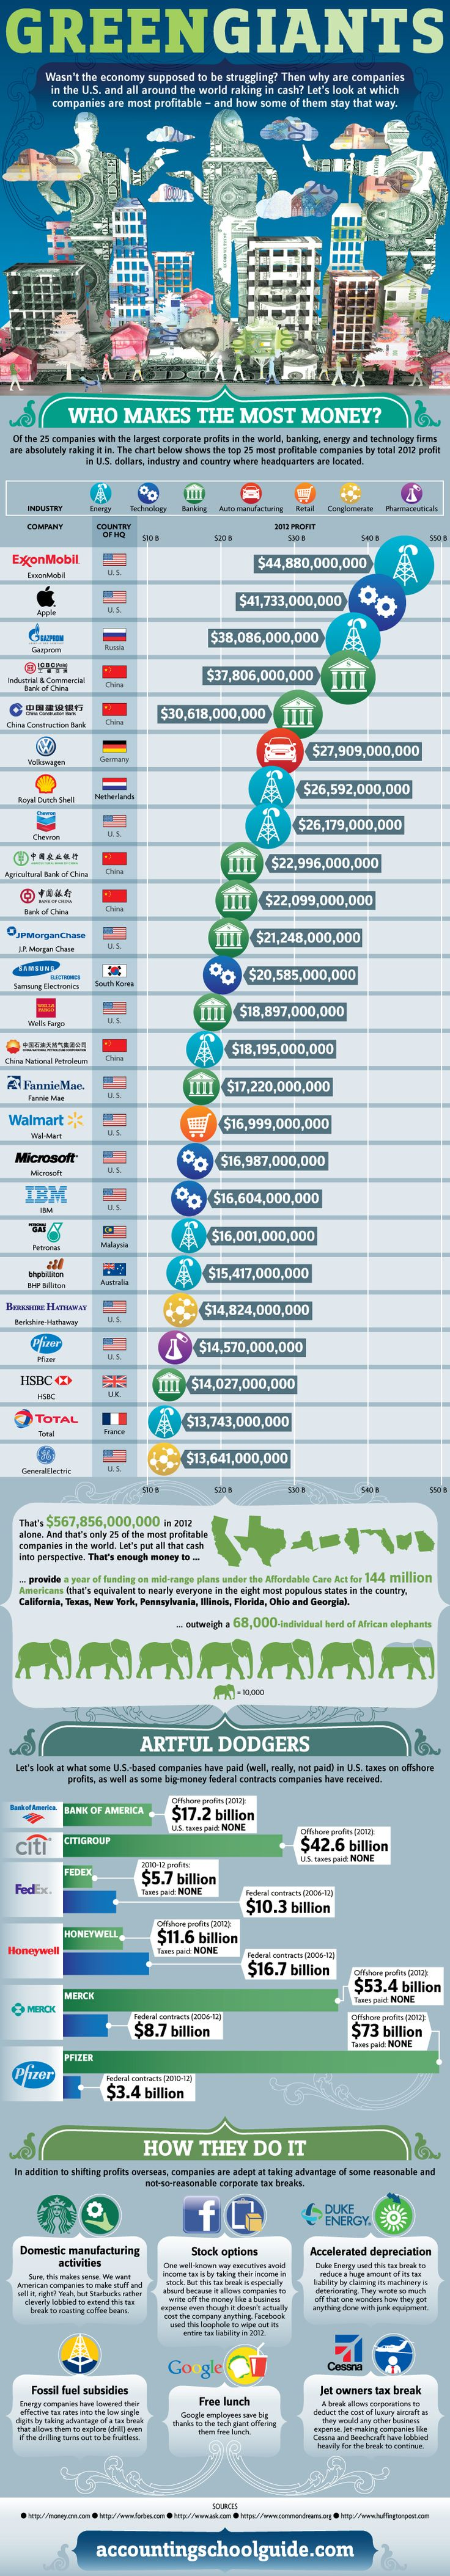 Green Giants: Who Makes The Most Money   #Infographic #Economy #Money